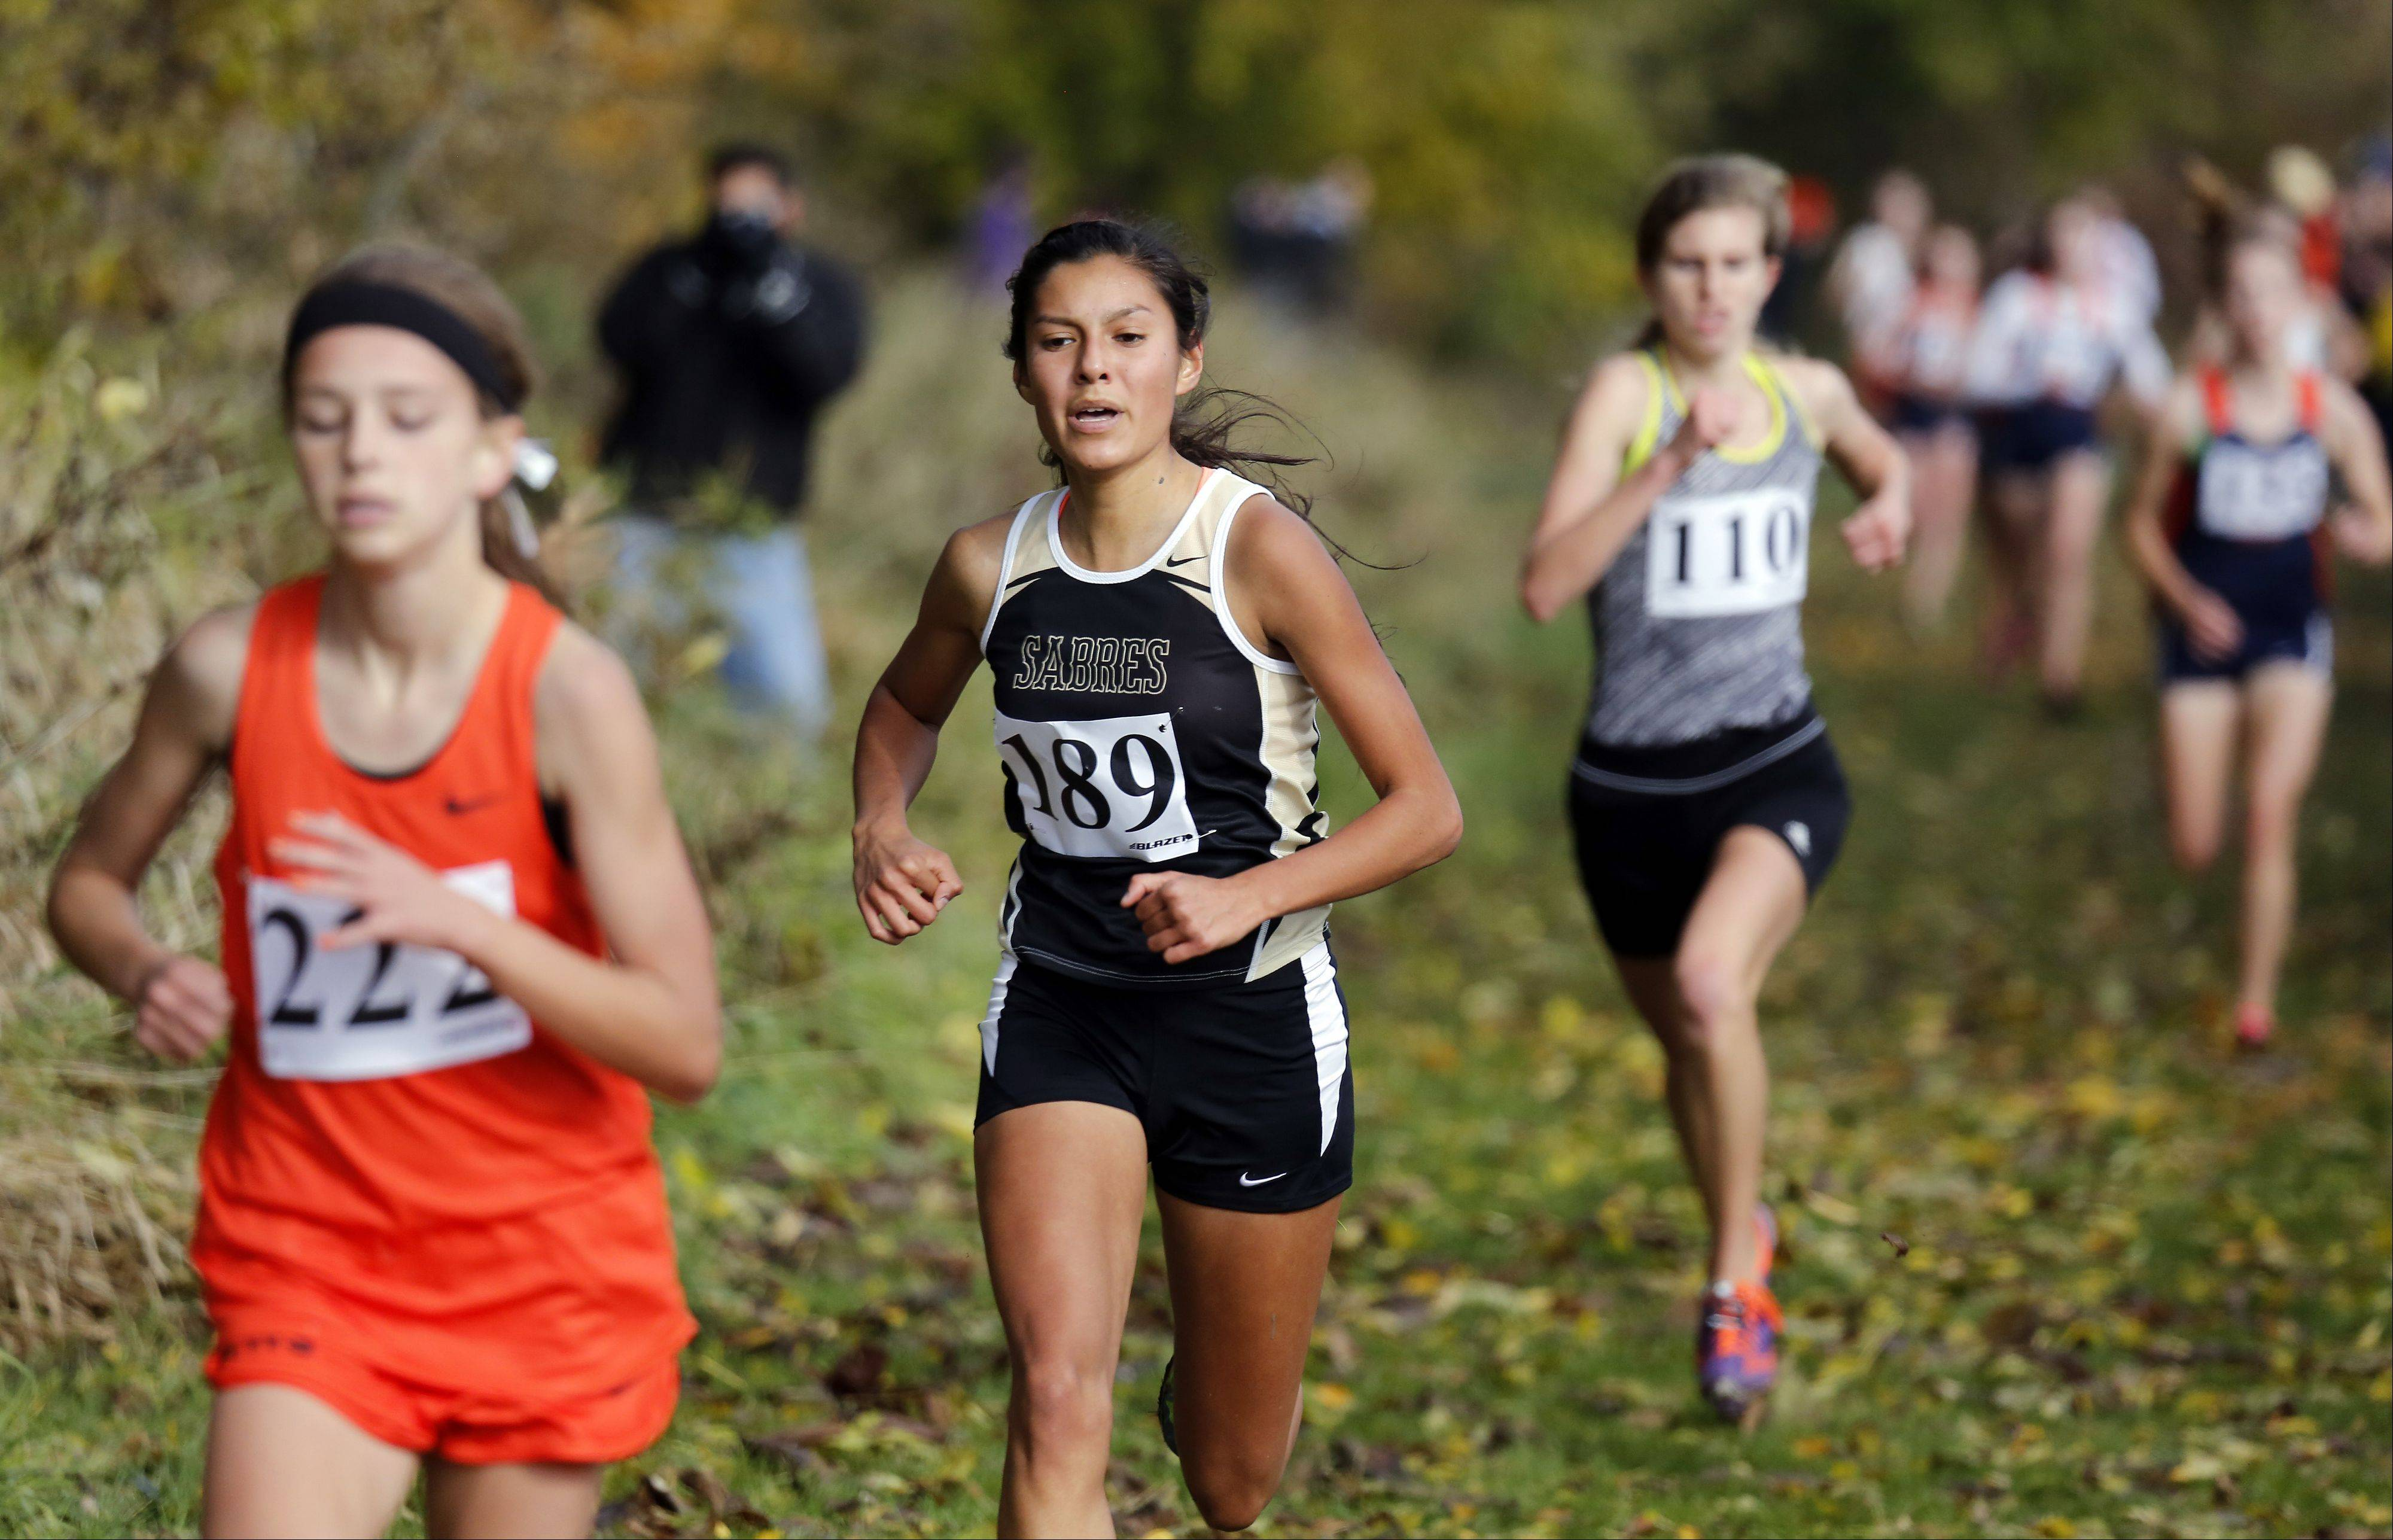 Gabby Juarez of Streamwood heads to sixth place during the Waubonsie Valley girls cross country Sectional in Aurora.